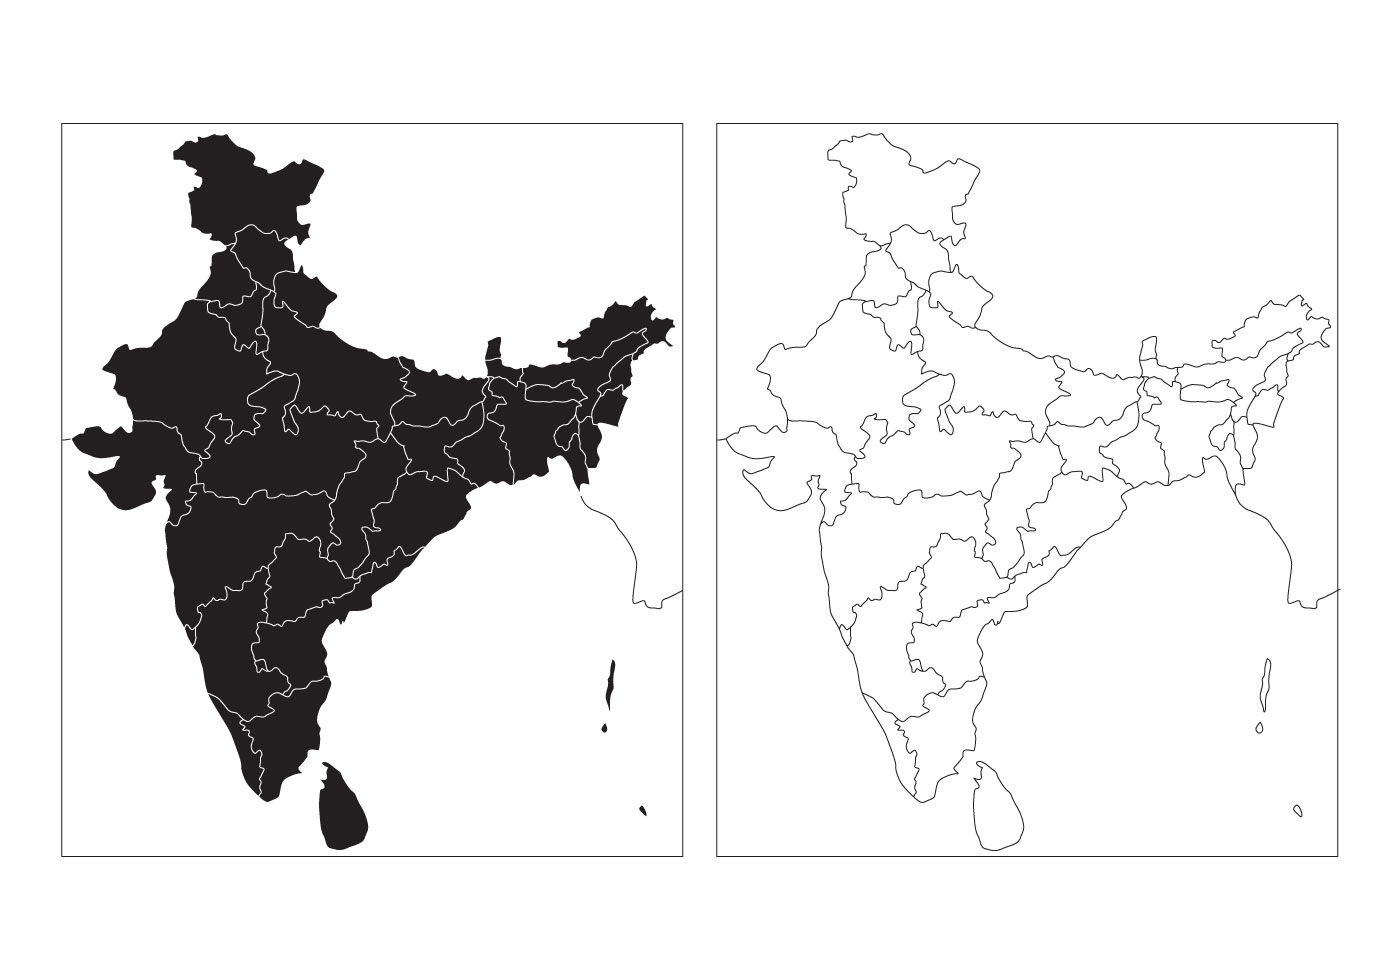 india map outline vector State Map Of India Vector Download Free Vectors Clipart india map outline vector